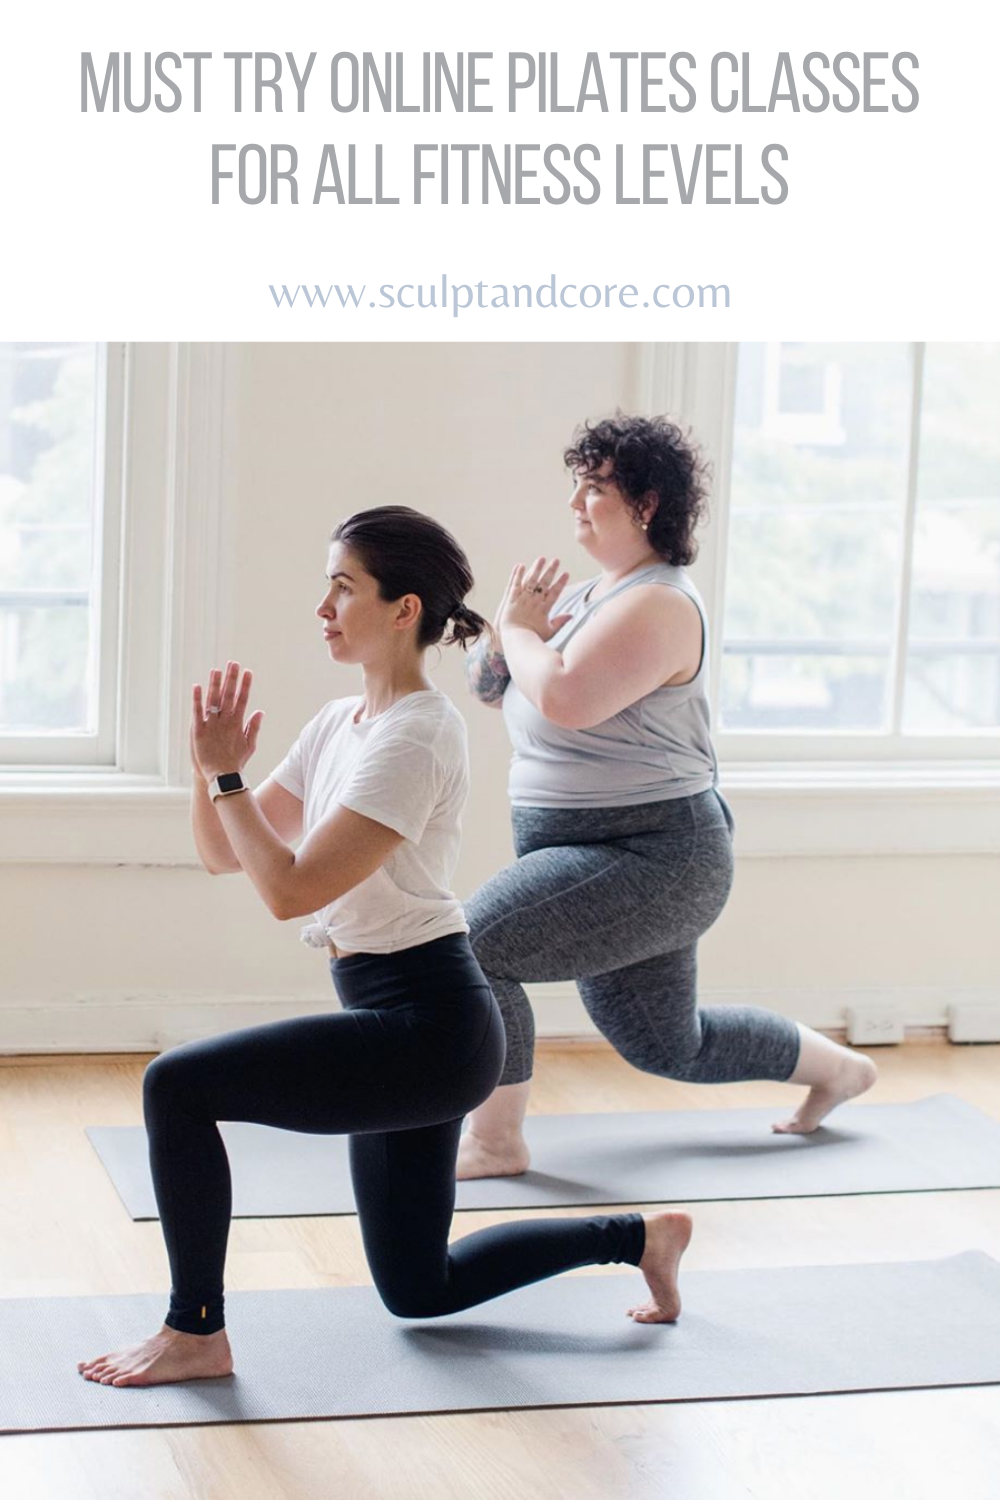 Online Pilates Classes You Should Try